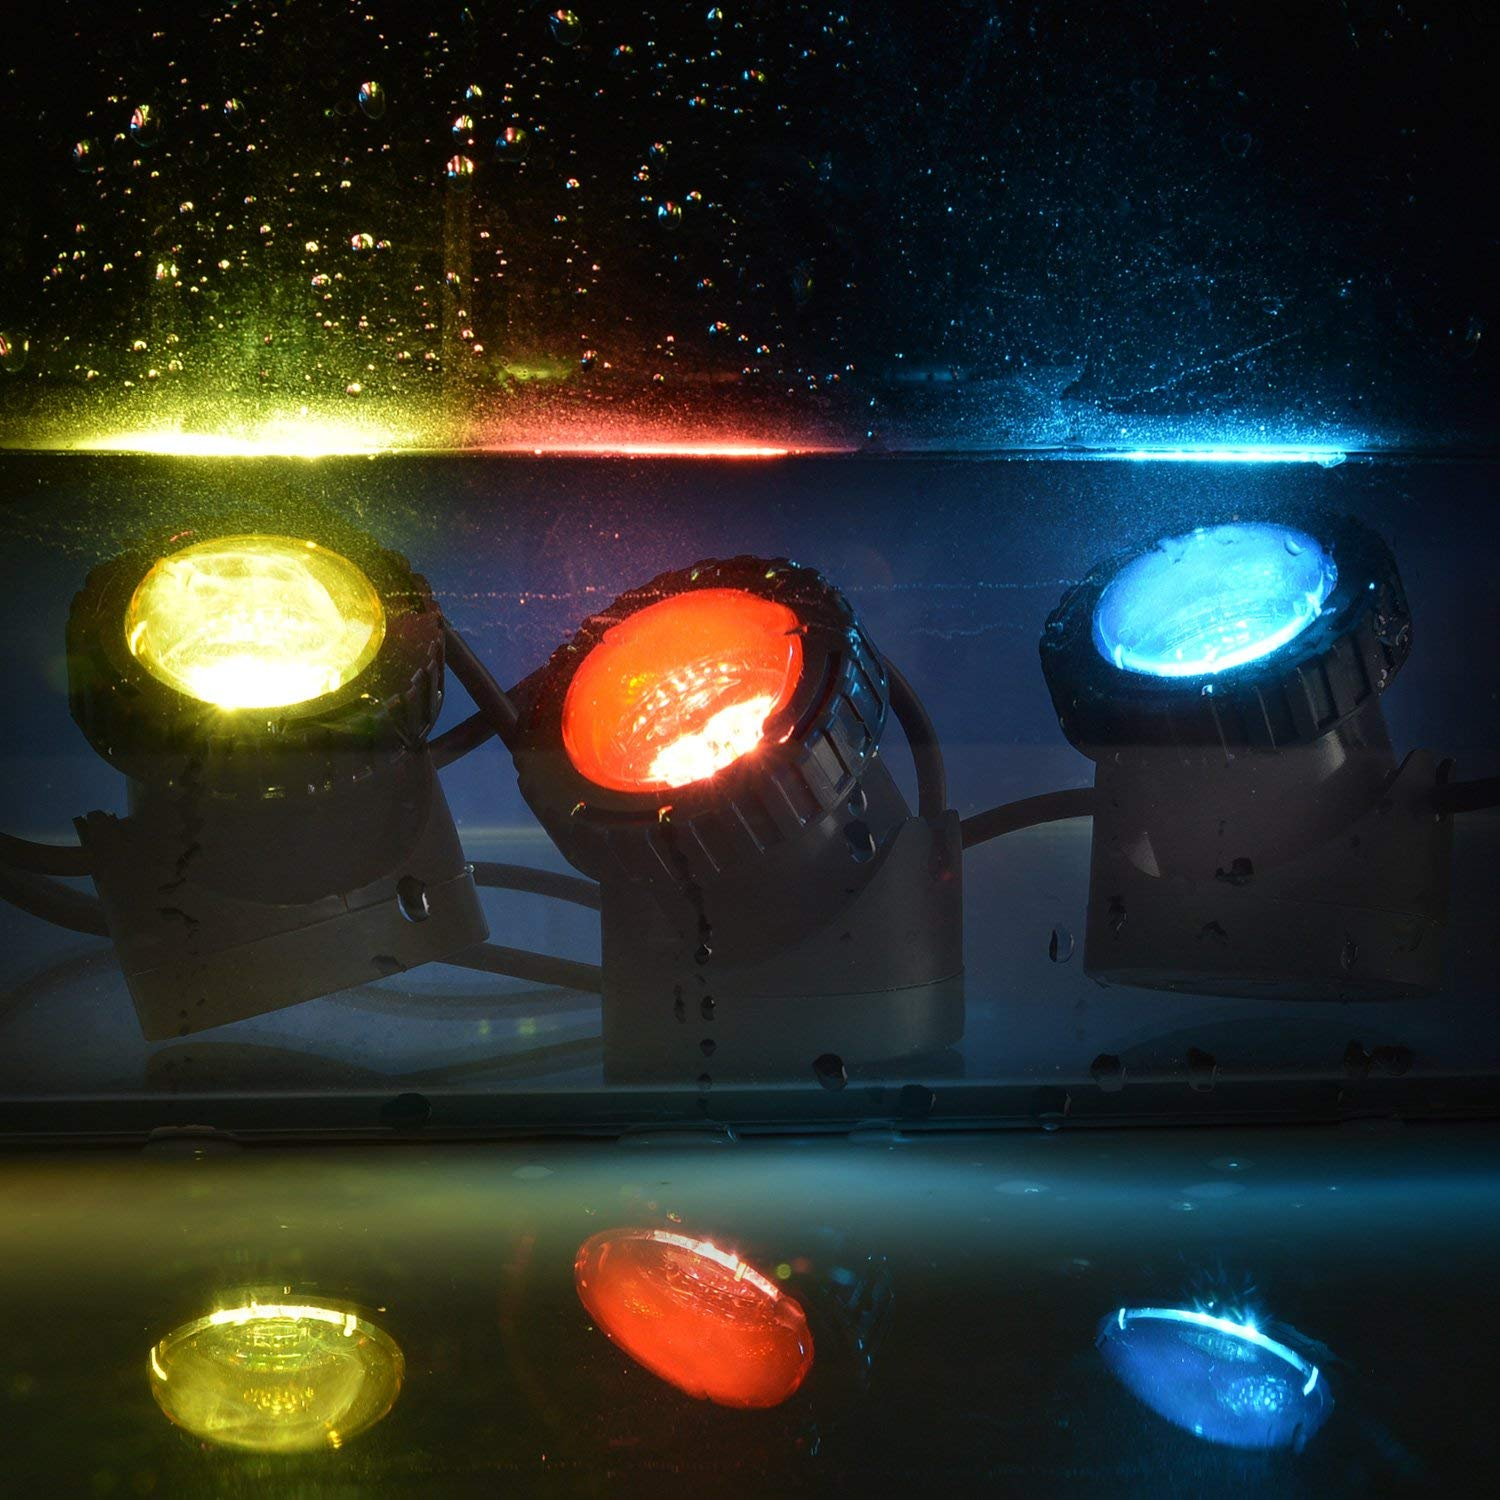 Pond Lights Remote Control Submersible Lamp Set of 4 IP68 Underwater Aquarium Spot light 48-LED Multi-color with Timer Setting Decoration Landscape Lamp for Swimming Pool Fish Tank Fountain Water